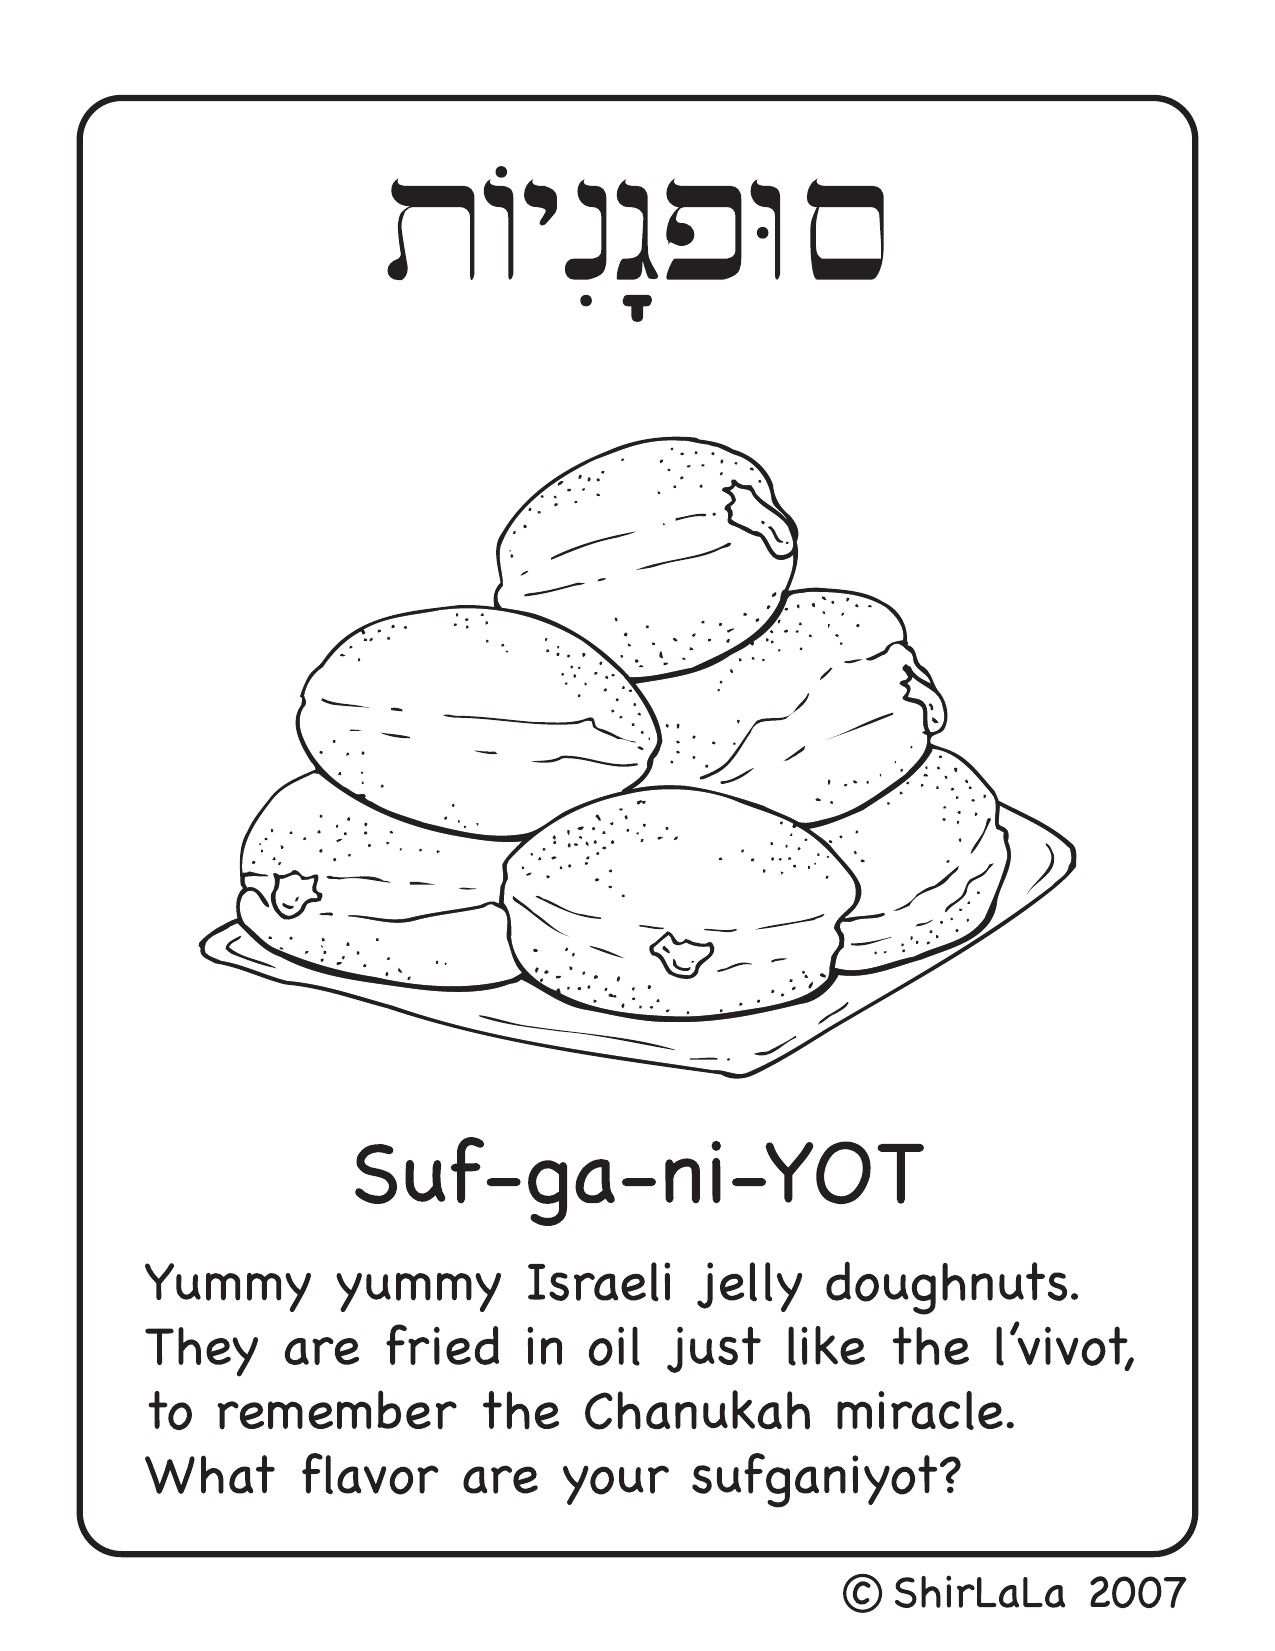 Sufganiyot Jelly Doughnuts Coloring Page For Chanukah On Blog